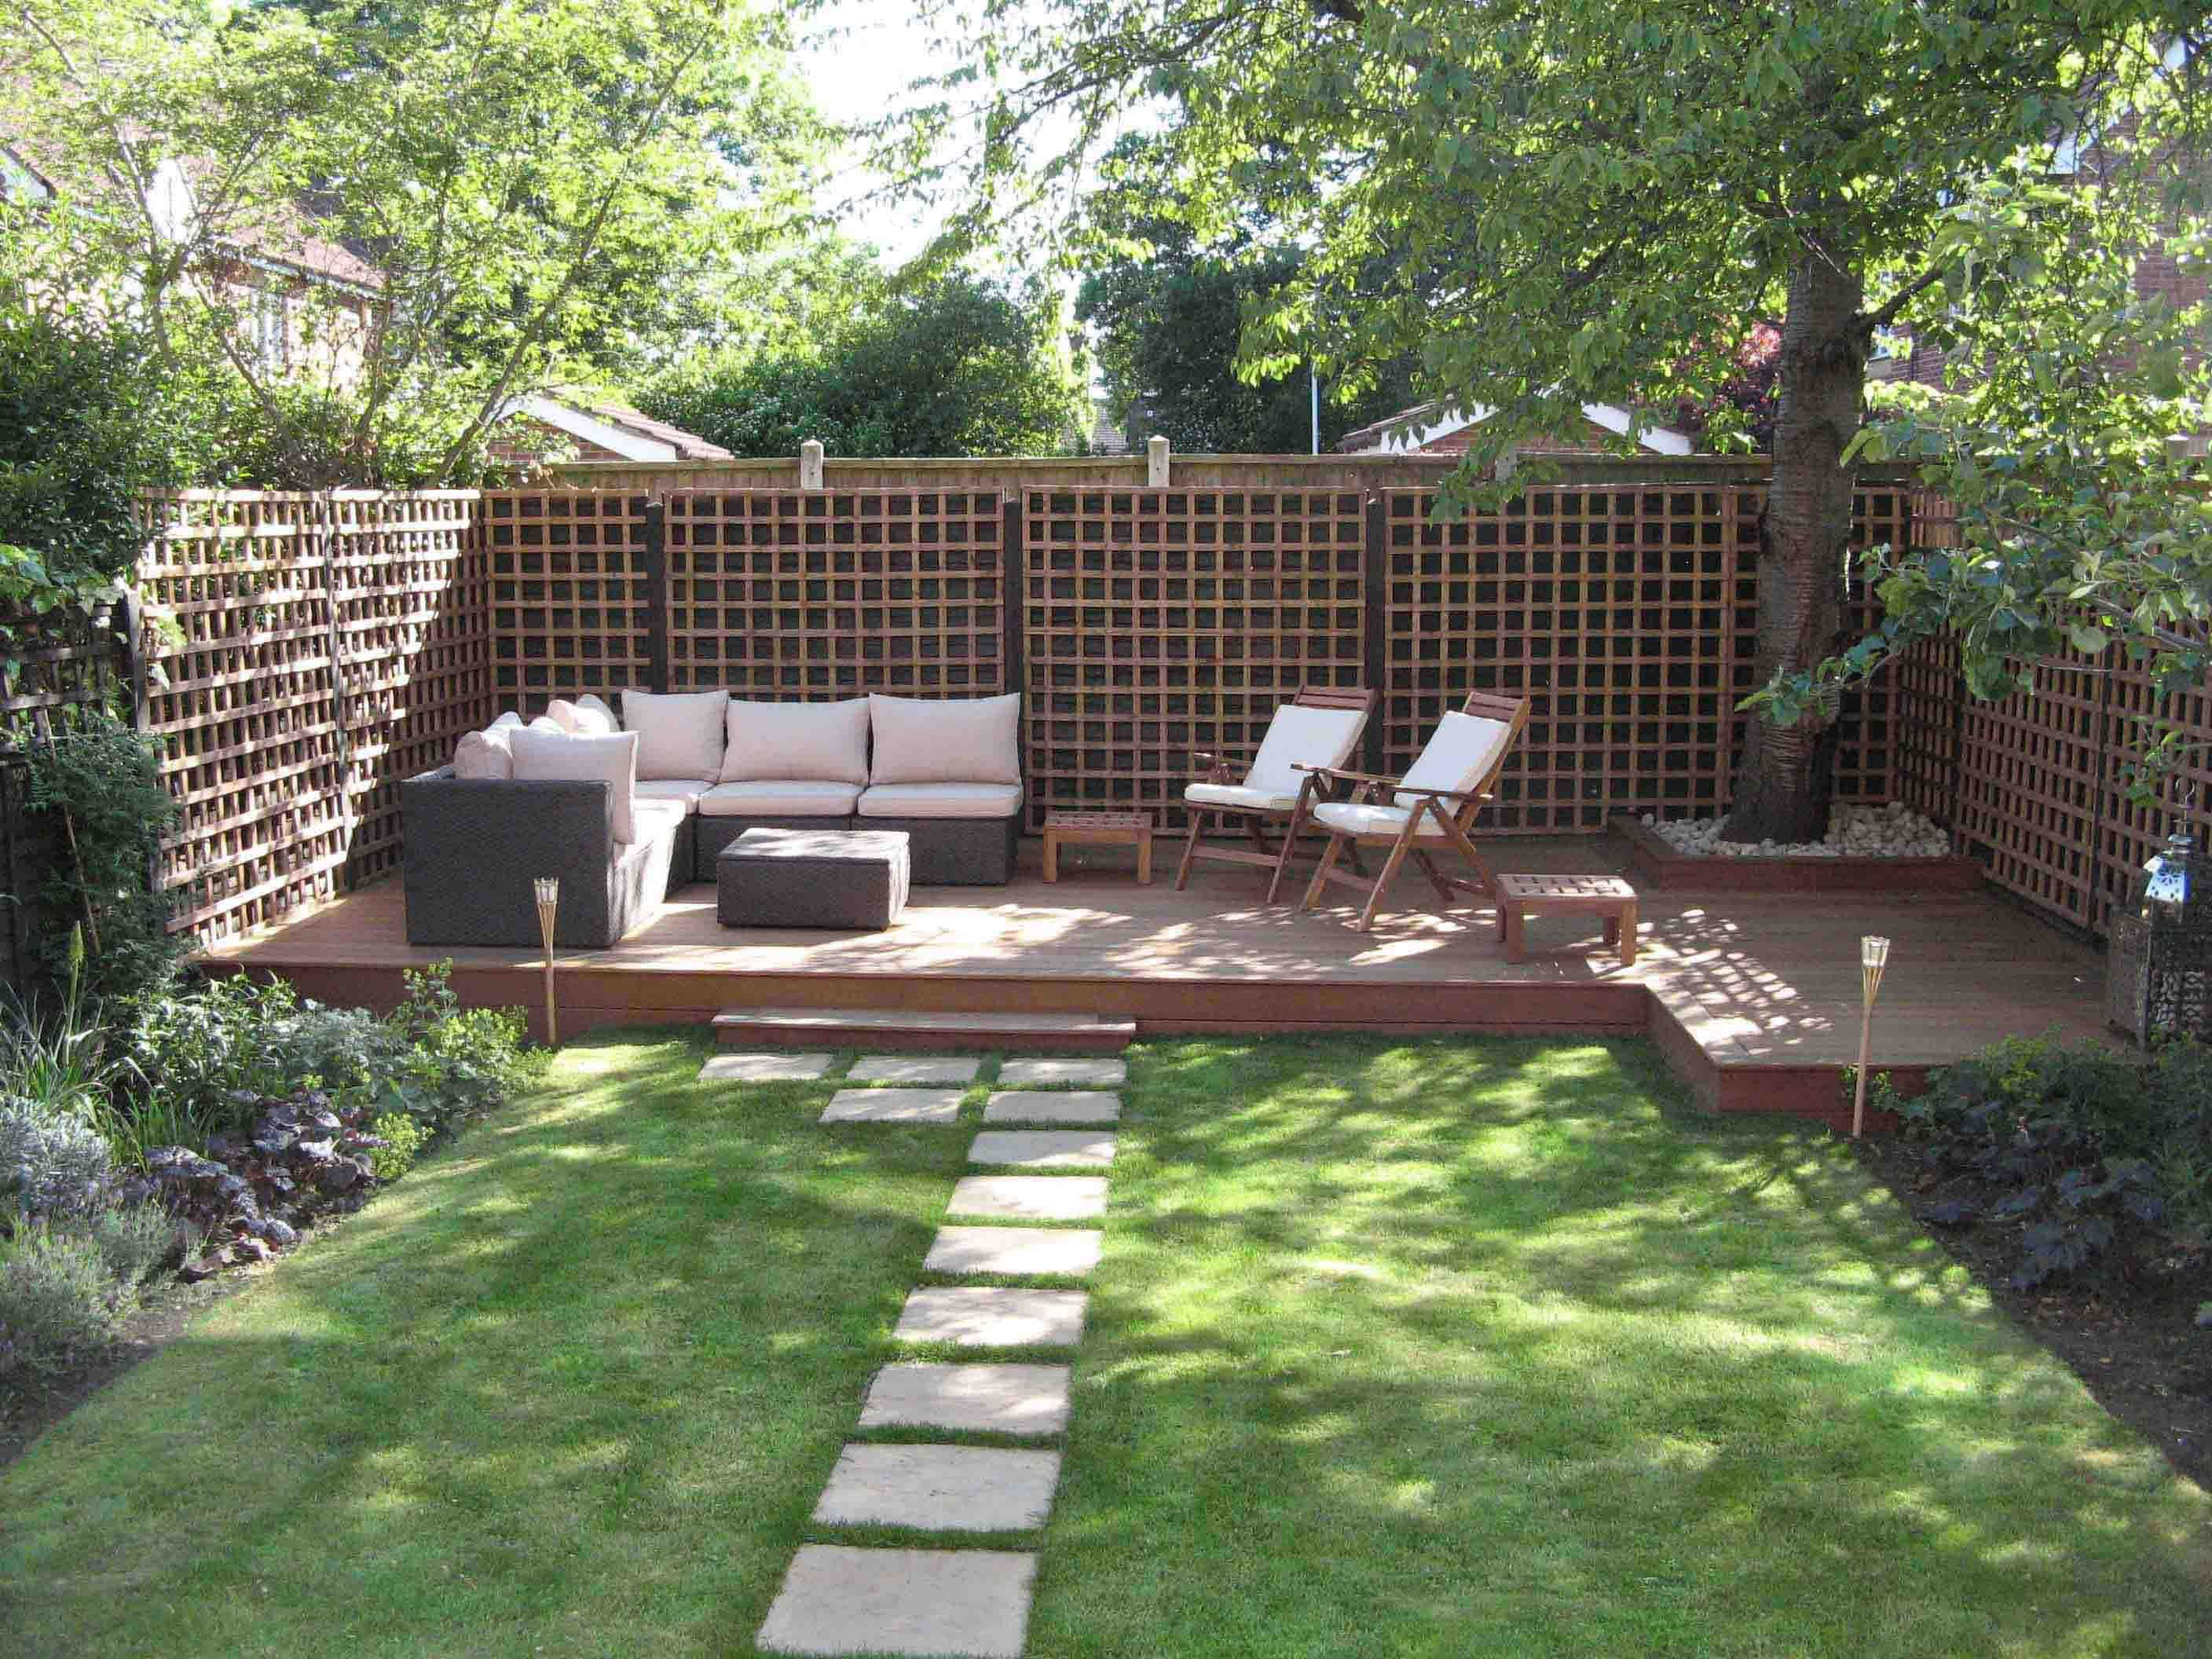 25 Landscape Design For Small Spaces | Small backyard ...